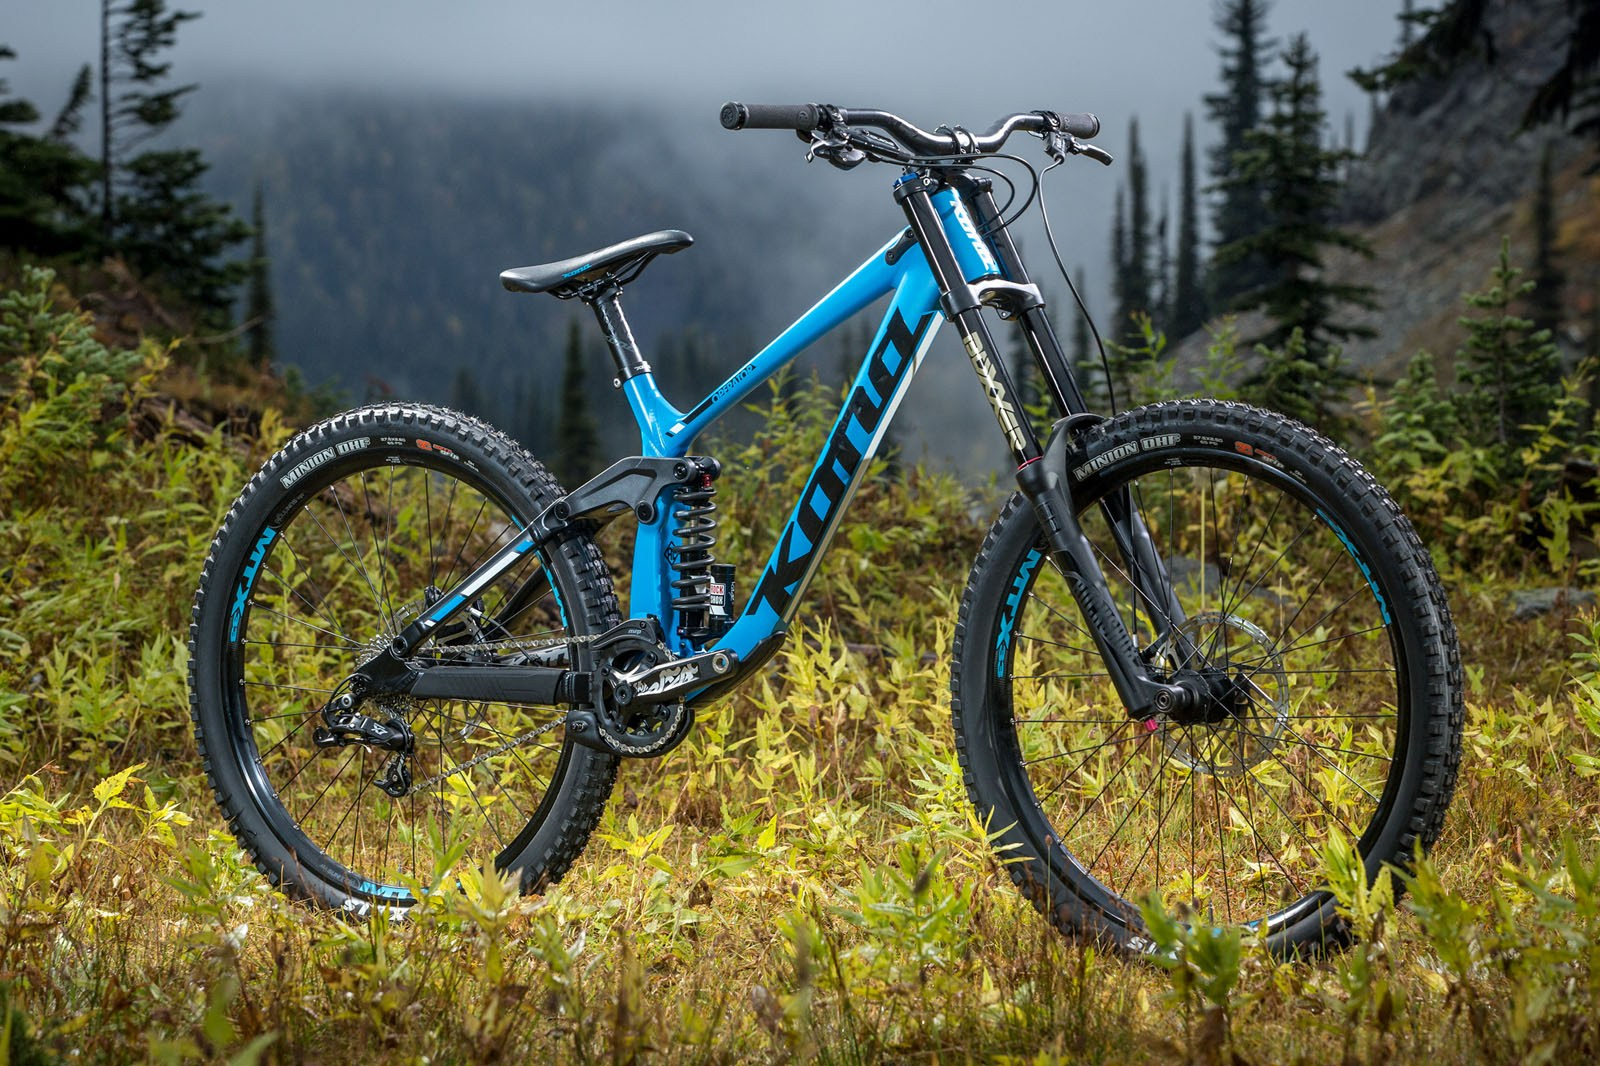 92957dcdd90 The base model 2017 Kona Operator. For a price point bike, it appears to  have a well thought out build spec, and looks good in the flesh